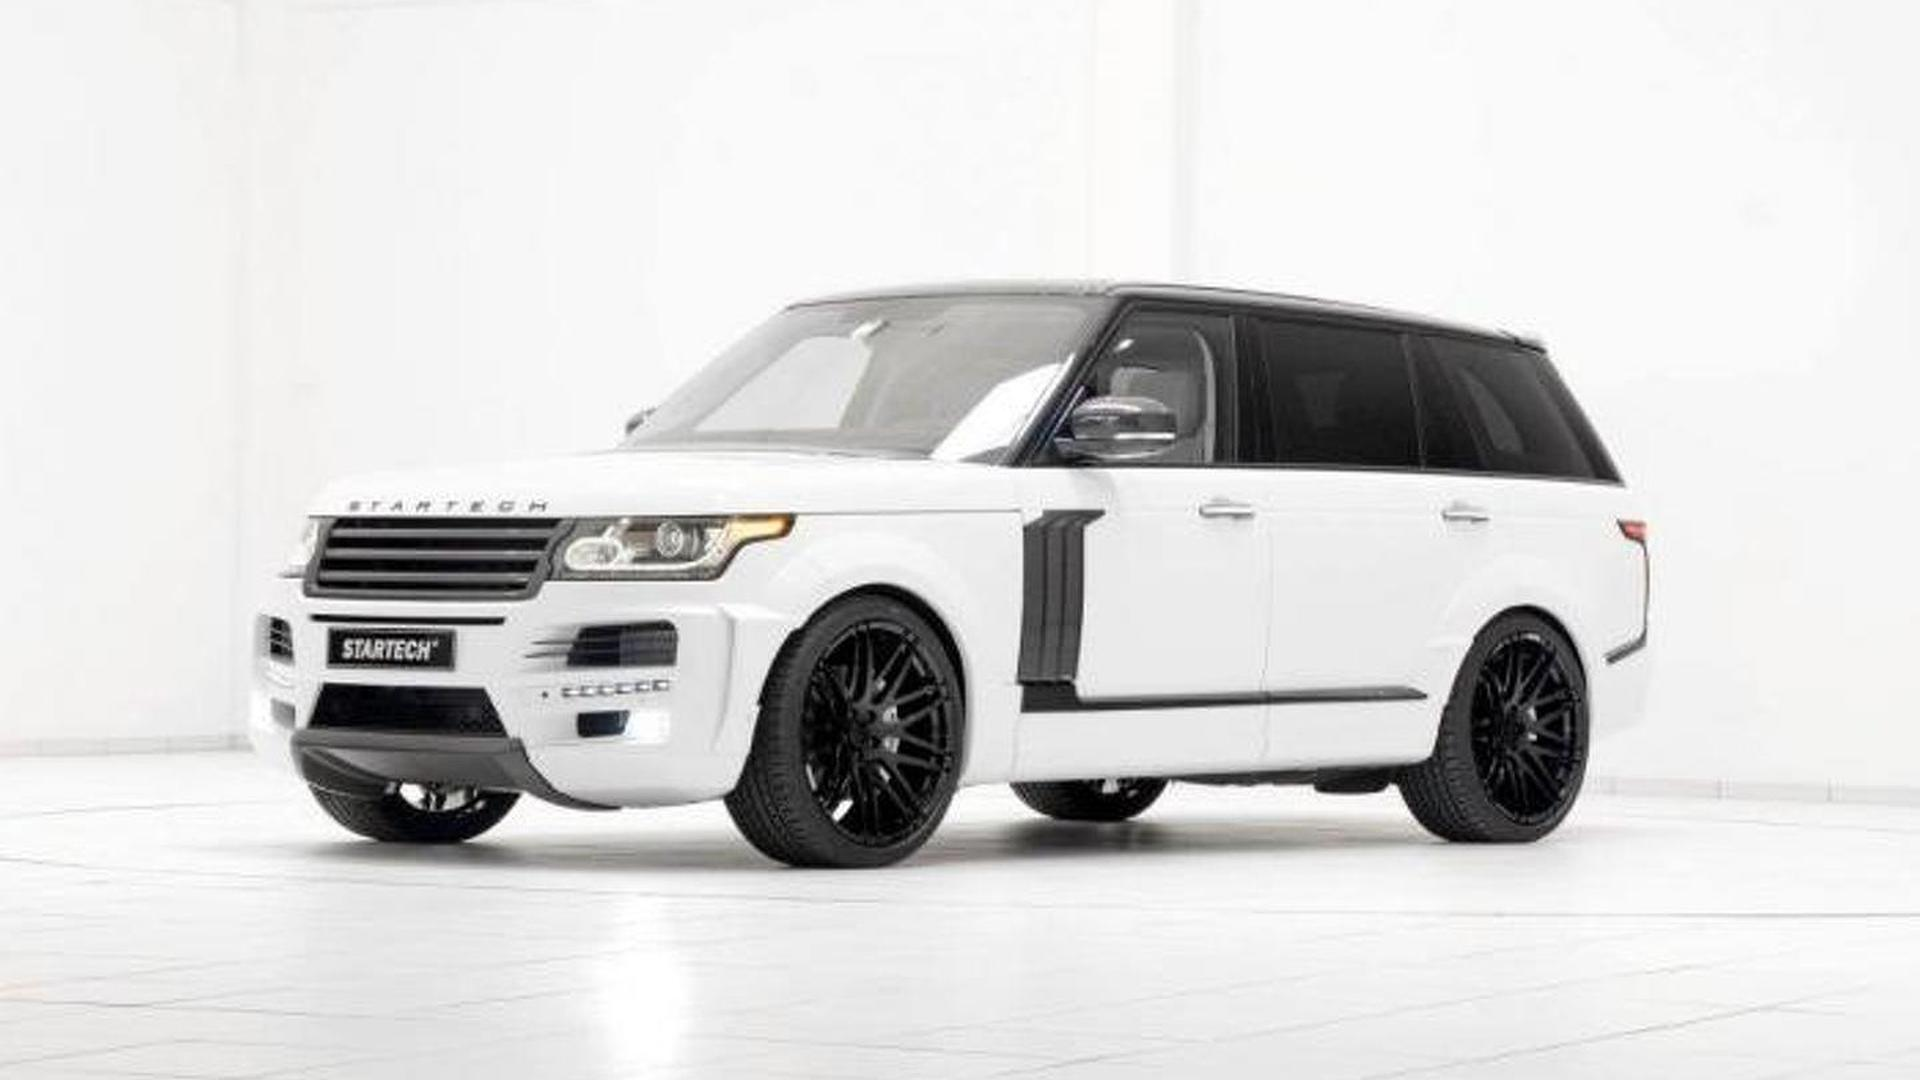 Startech previews their widebody kit for the Range Rover LWB